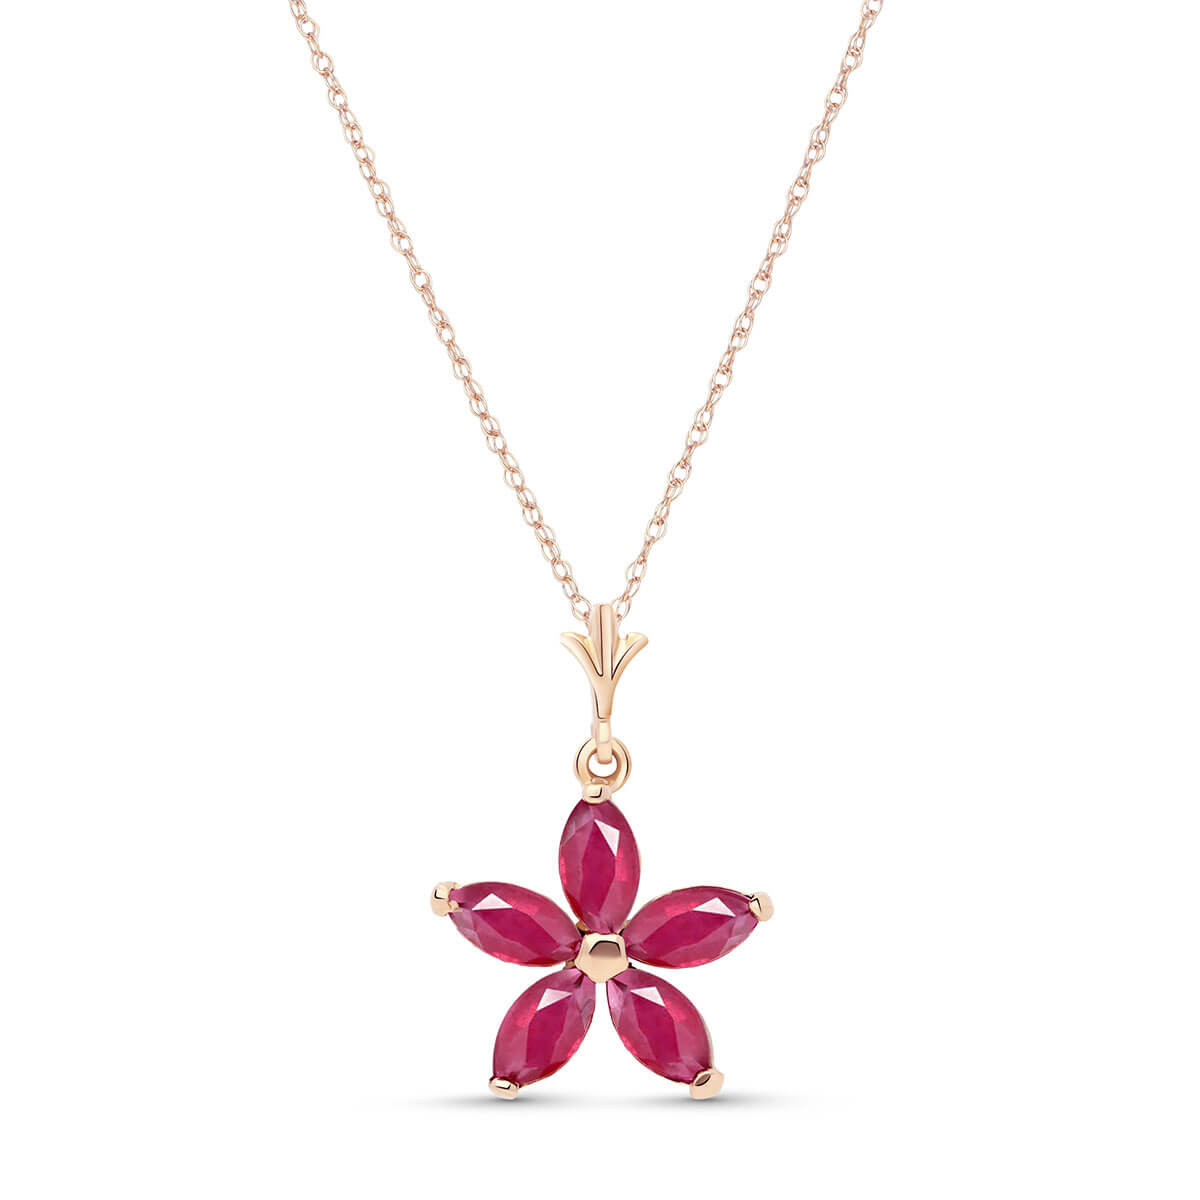 Ruby Flower Star Pendant Necklace 1.4 ctw in 9ct Rose Gold